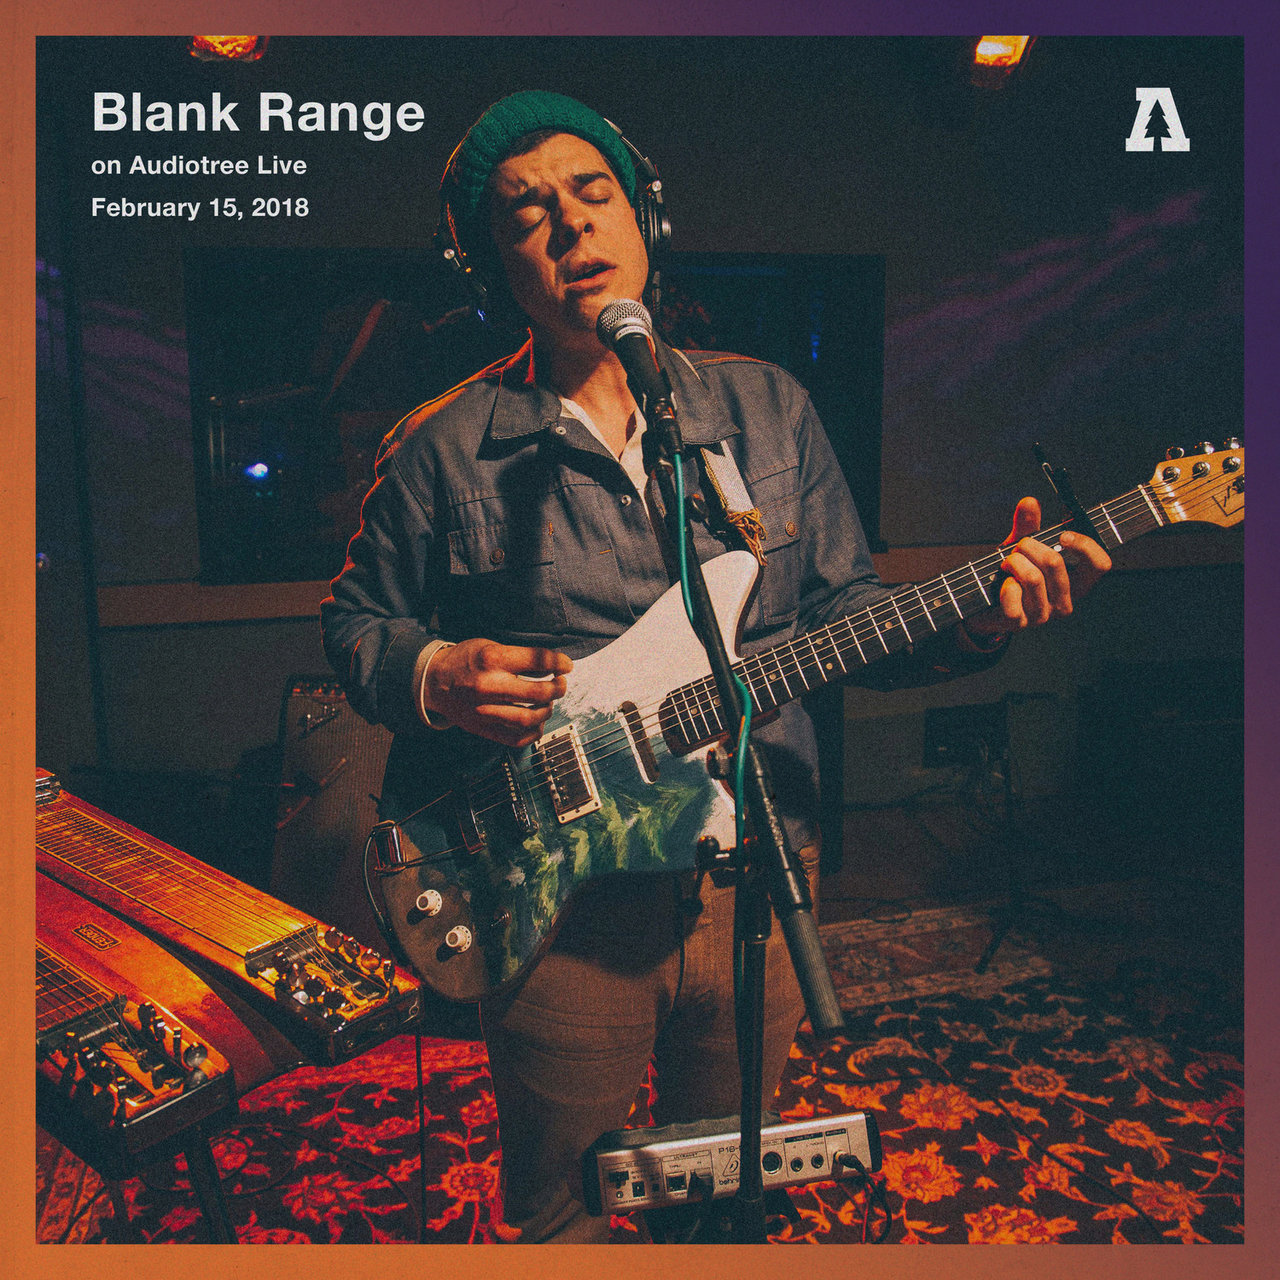 Blank Range on Audiotree Live